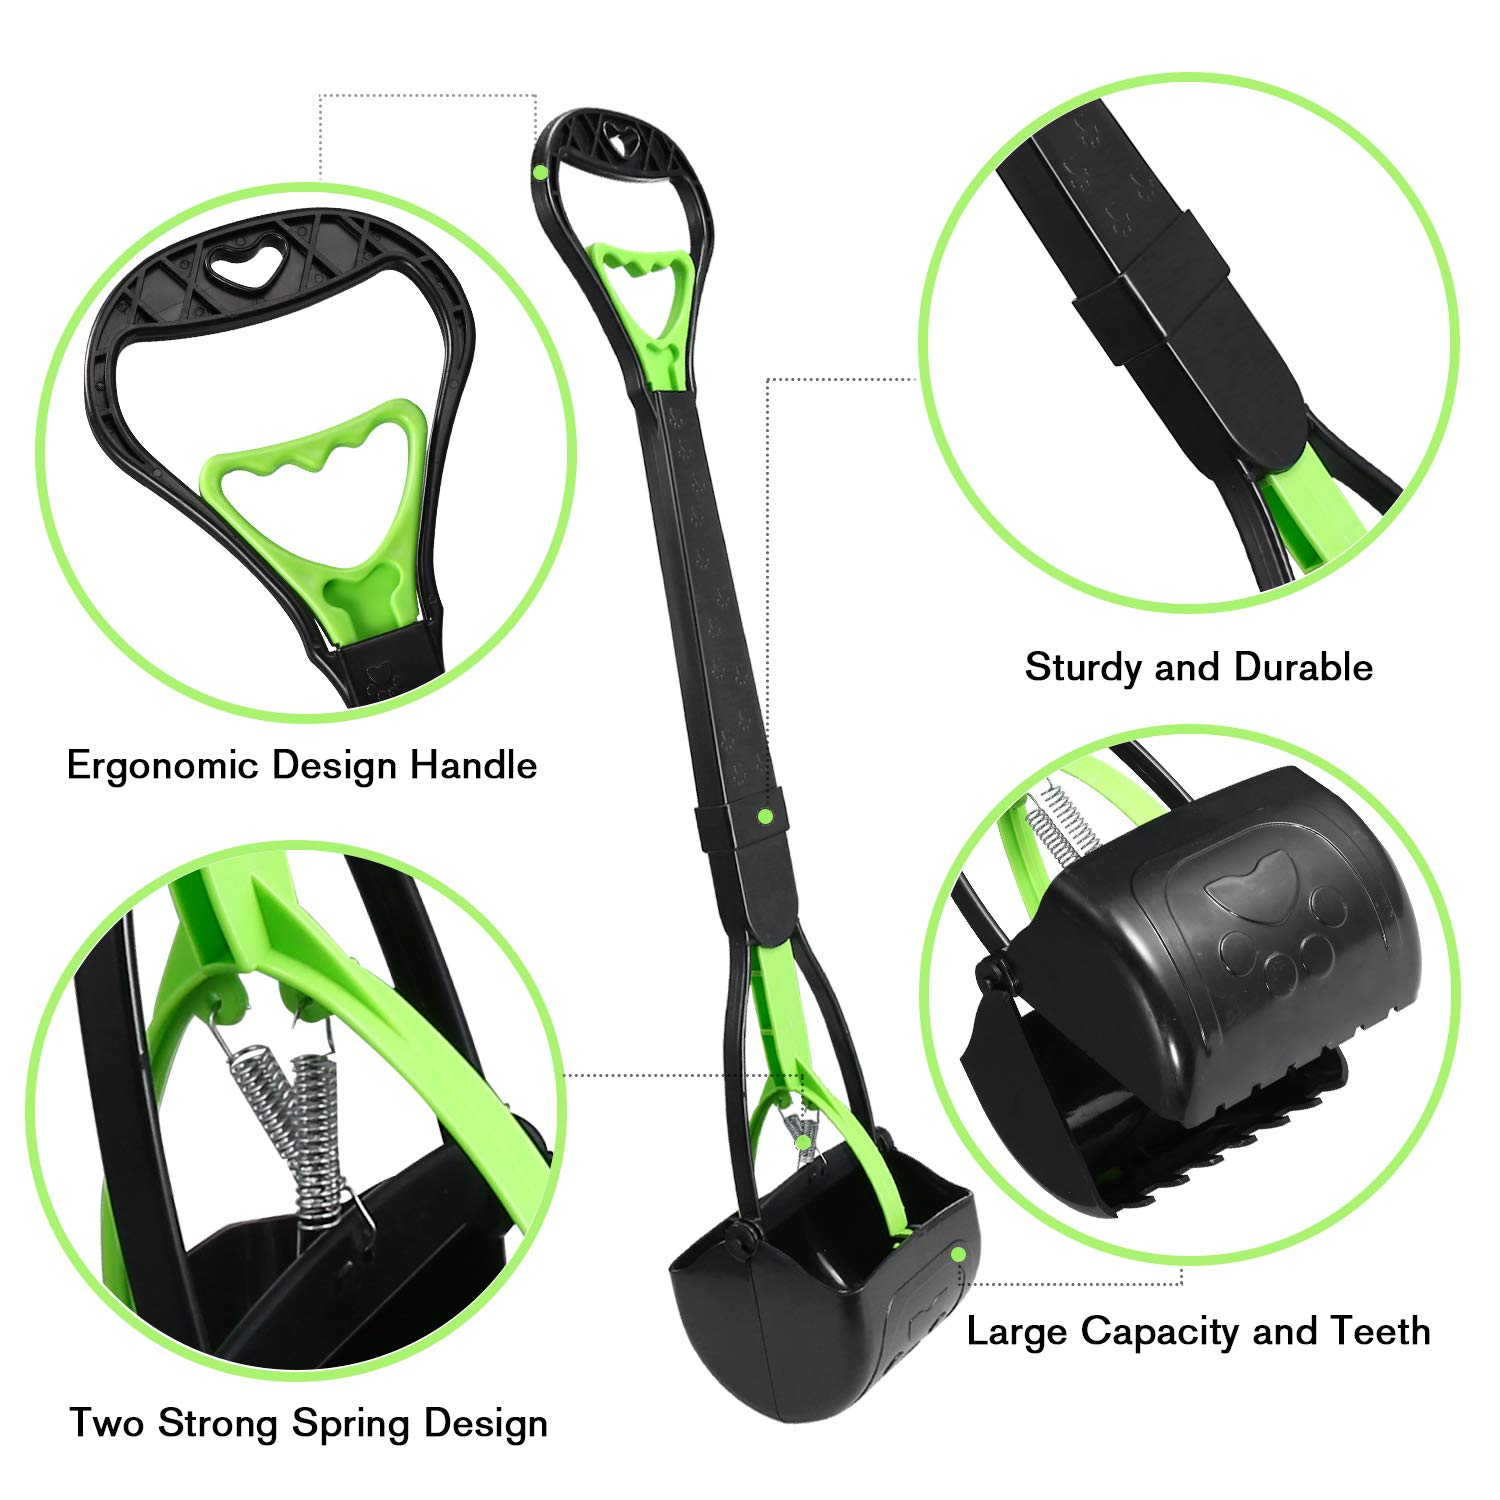 TIMINGILA Long Handle Pet Pooper Scooper for Dogs and Cats with High Strength Material and Durable Spring Easy to Use for Grass, Dirt, Gravel Pick Up (Green)